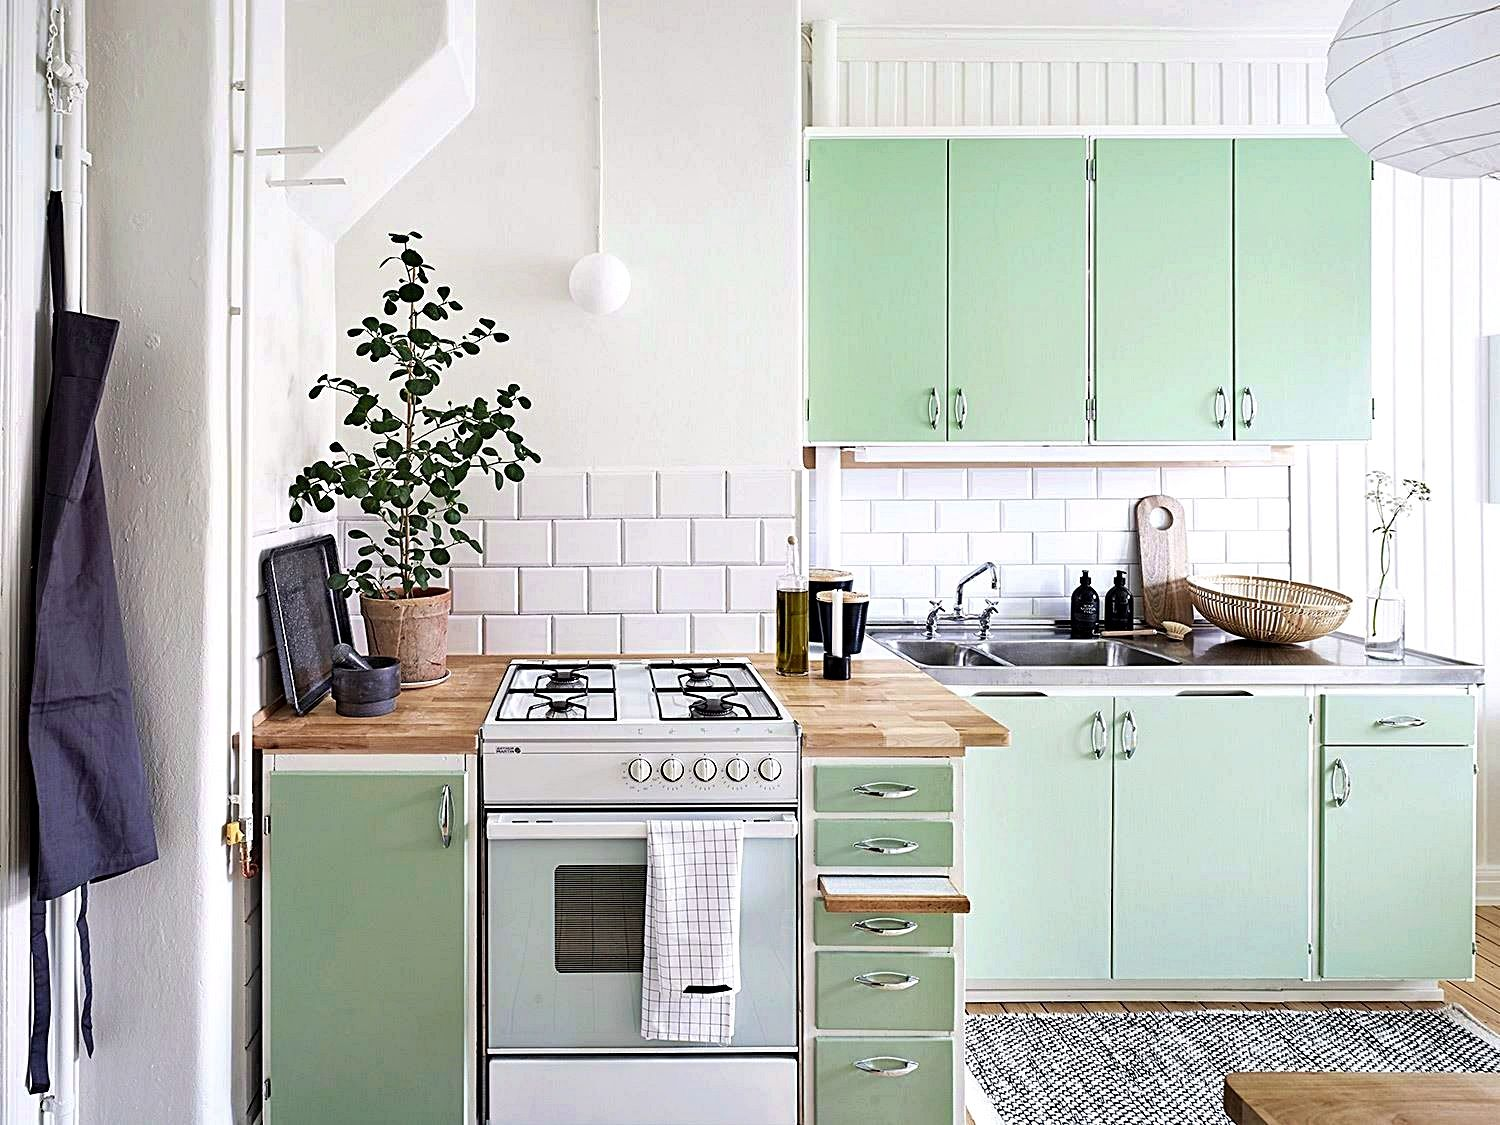 Kitchen Design Ideas A Good Trick And Tip When Decorating A Small Would Be To Incorporate The Application Of Lots Home Kitchens Mint Kitchen Kitchen Interior